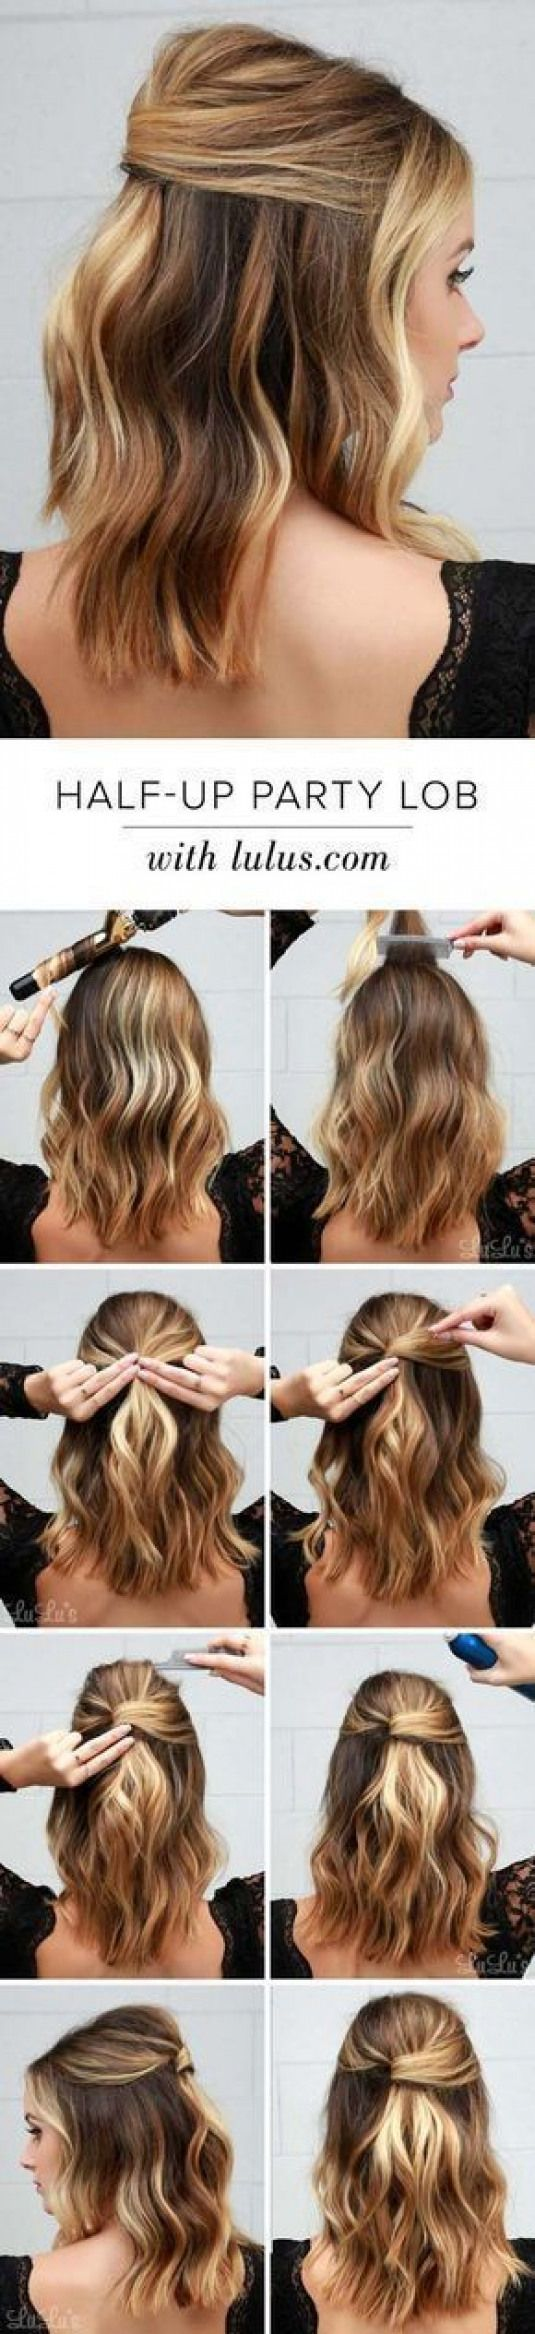 Cool and Easy DIY Hairstyles - Half Party Lob - Quick and Easy Ideas for Back to School Styles for Medium Short and Long Hair - Fun Tips and Best Step...